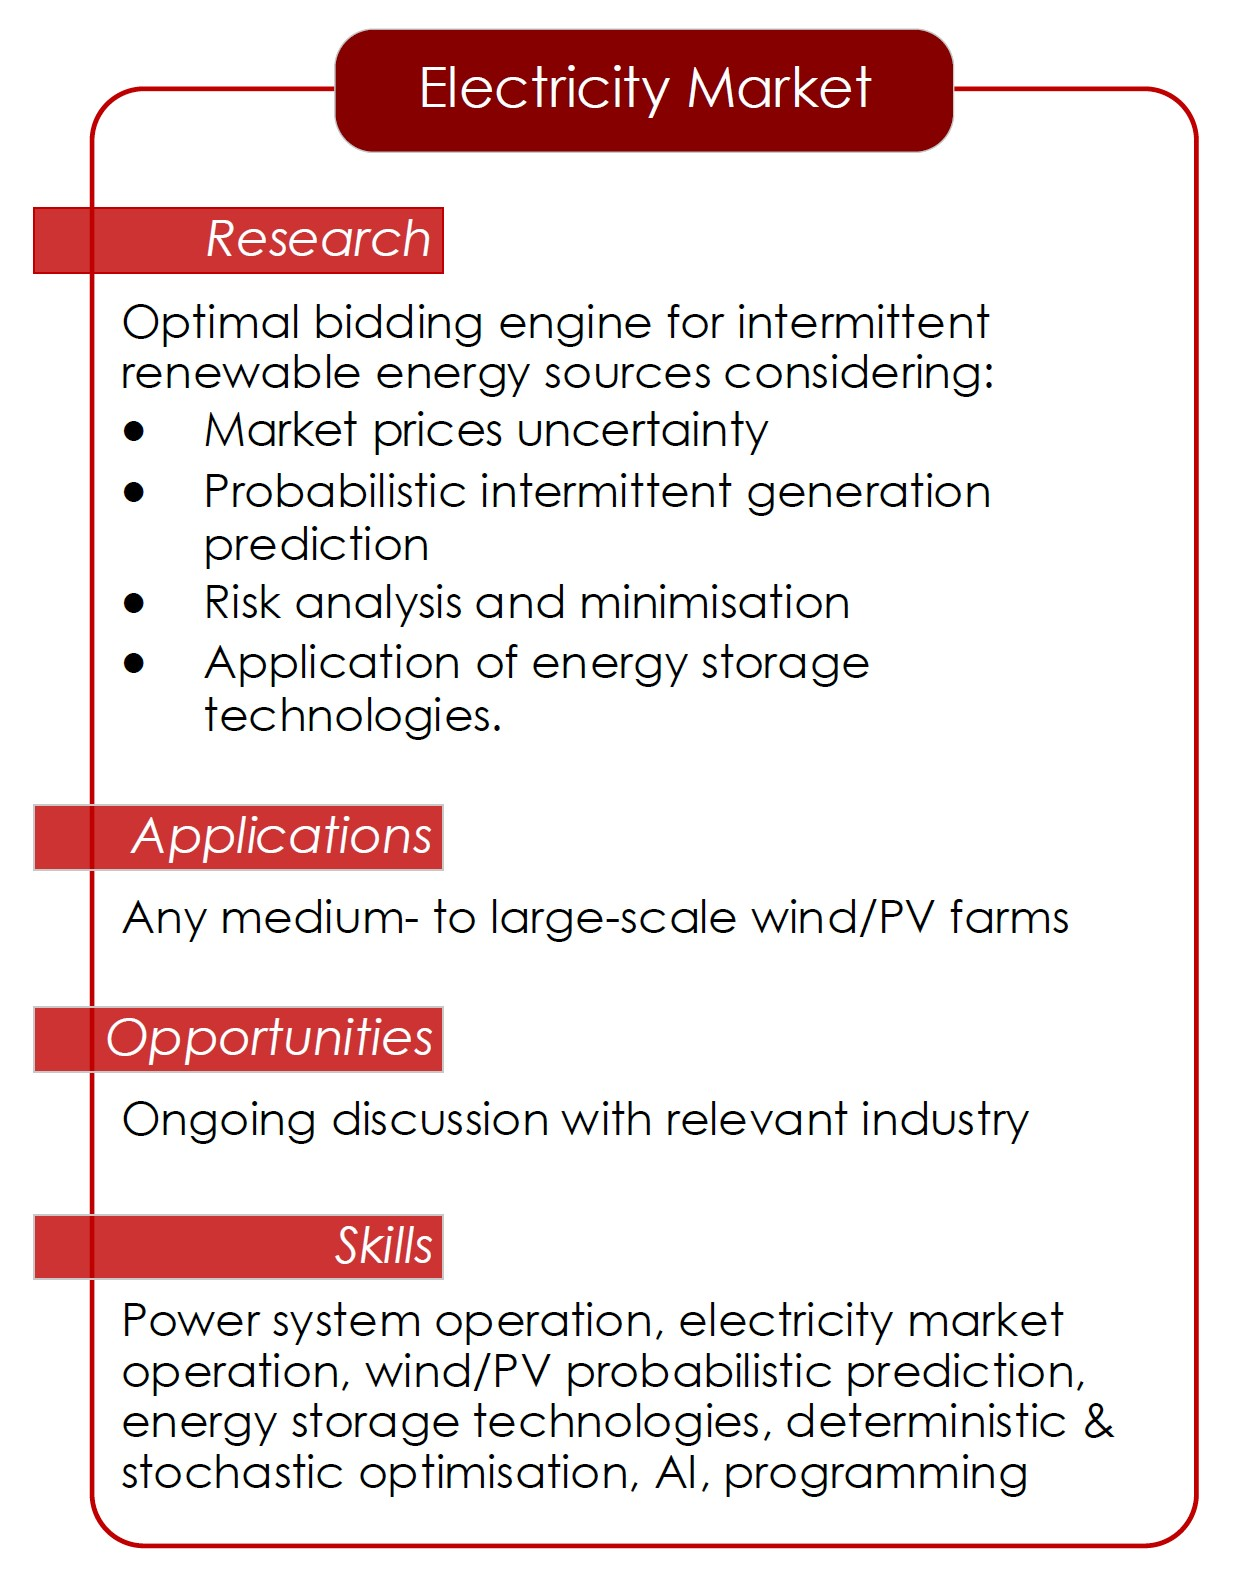 Research on Electricity Market